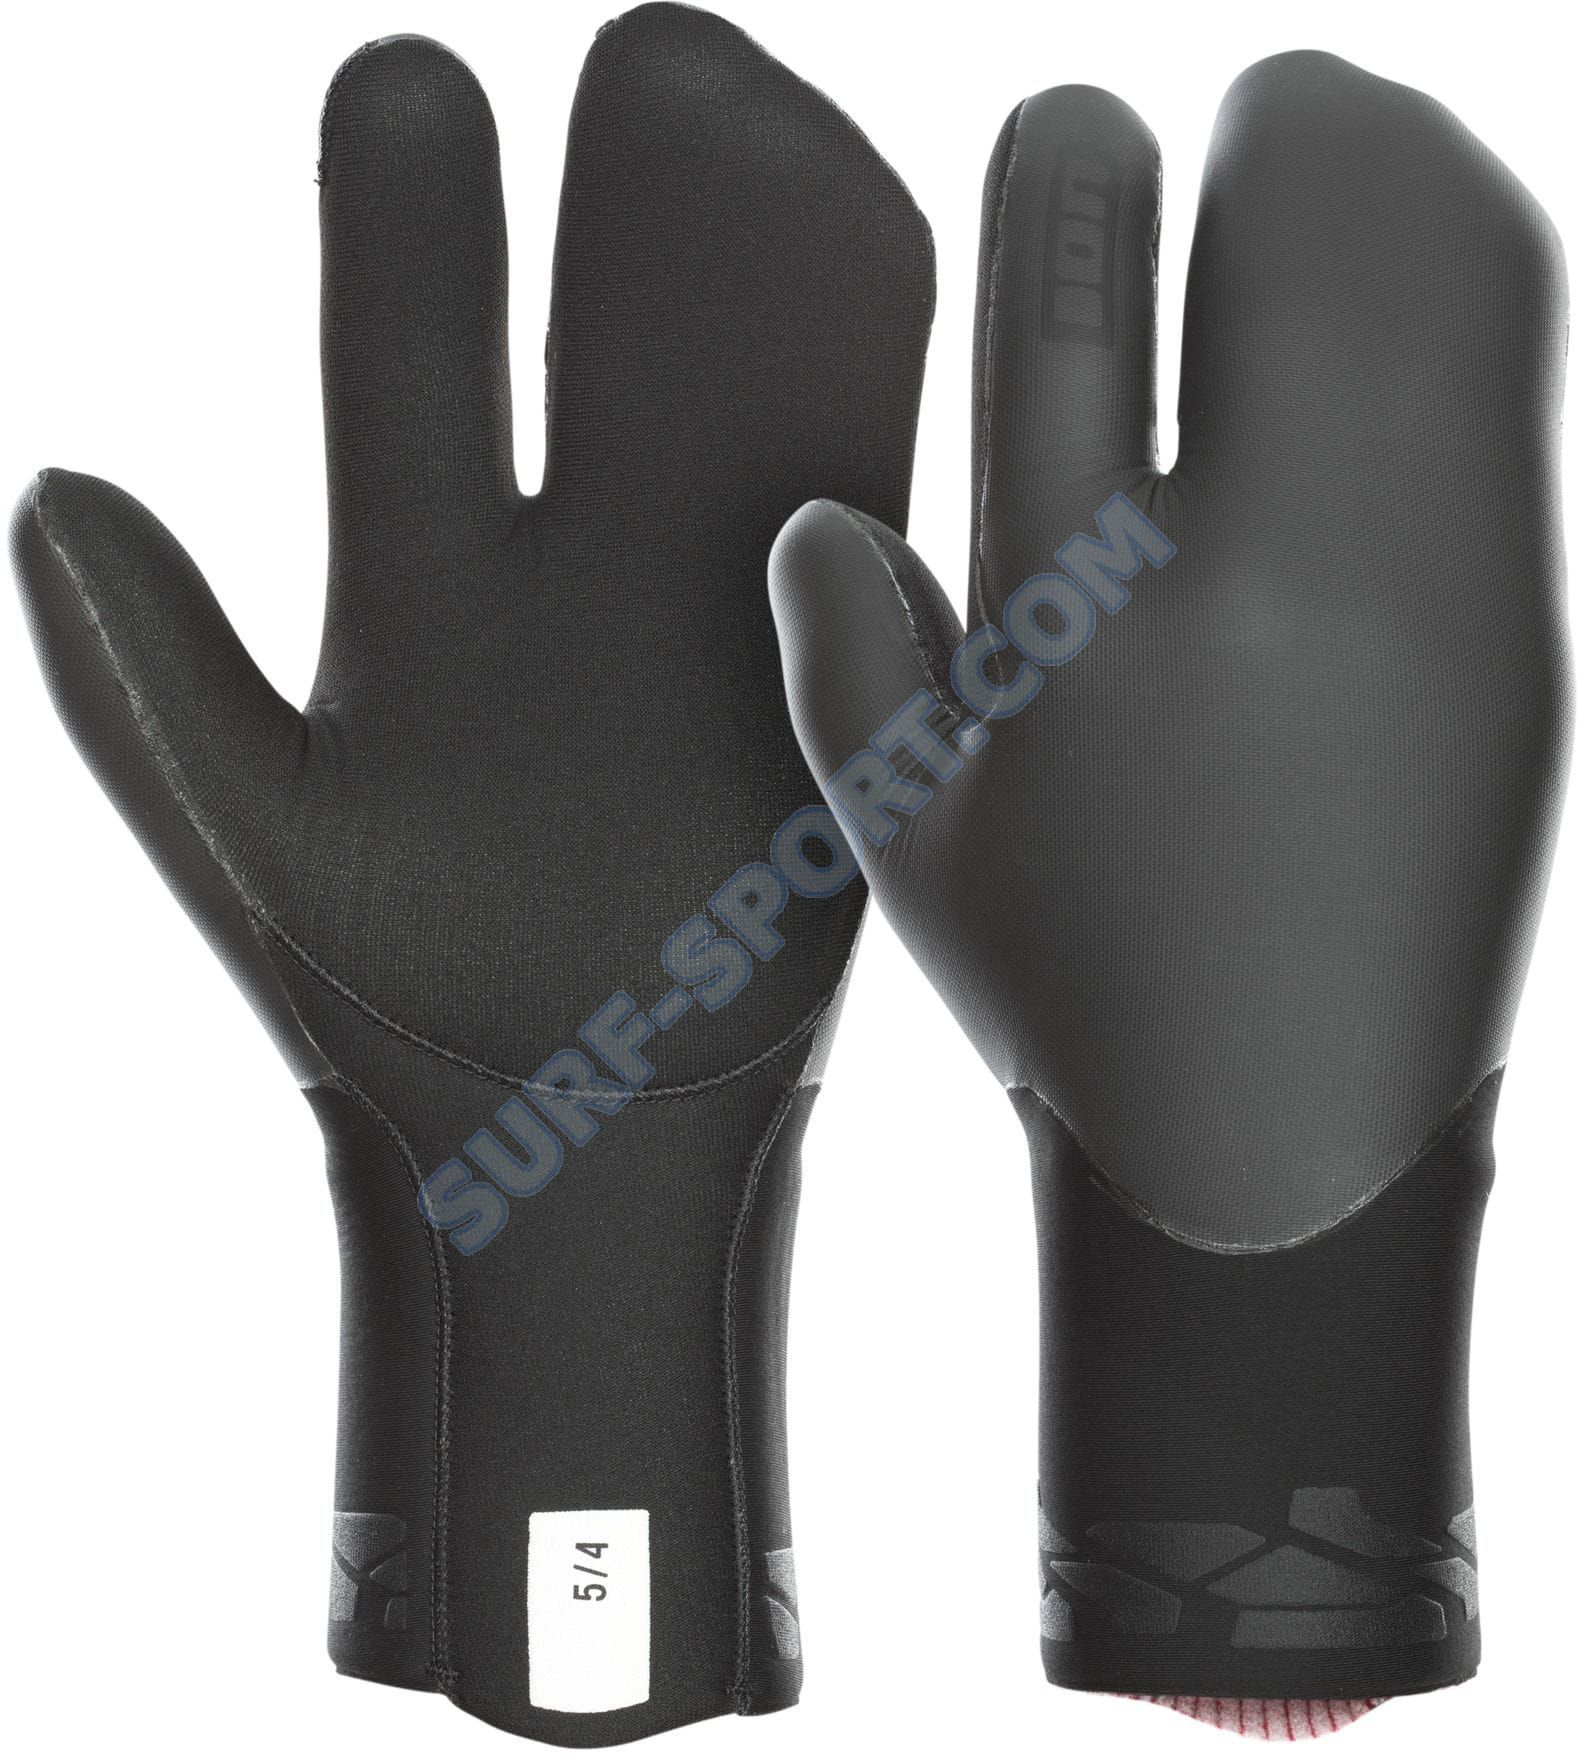 Rękawice Neoprenowe Ion Lobster Mitten Gloves 5/4 -2020 Black